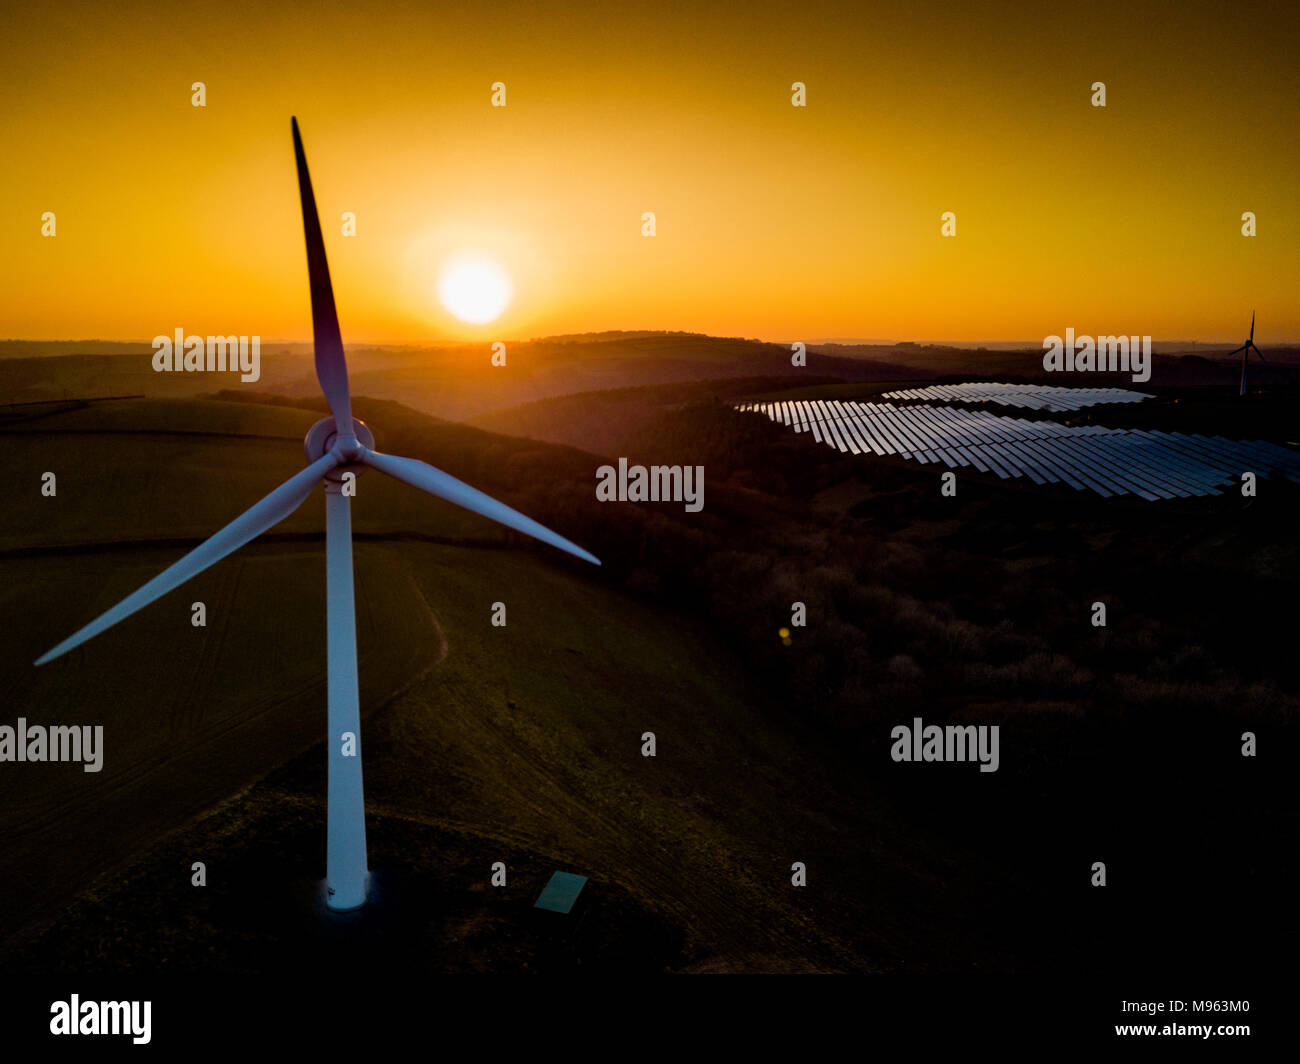 A turbine used to generate power is silhouetted by the sunset in Saltash, Cornwall - Stock Image